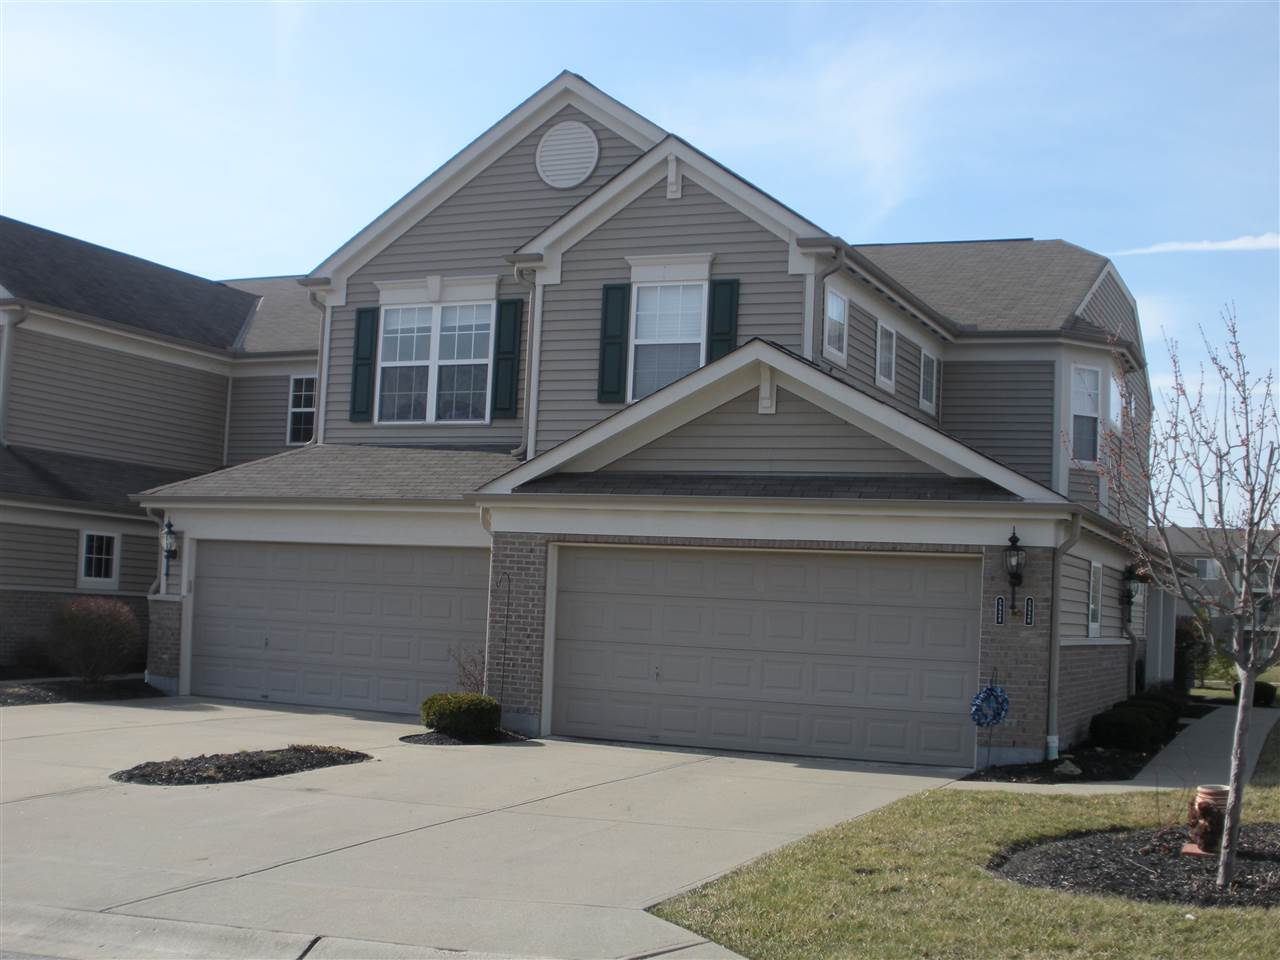 Photo 1 for 5924 Marble Way Cold Spring, KY 41076